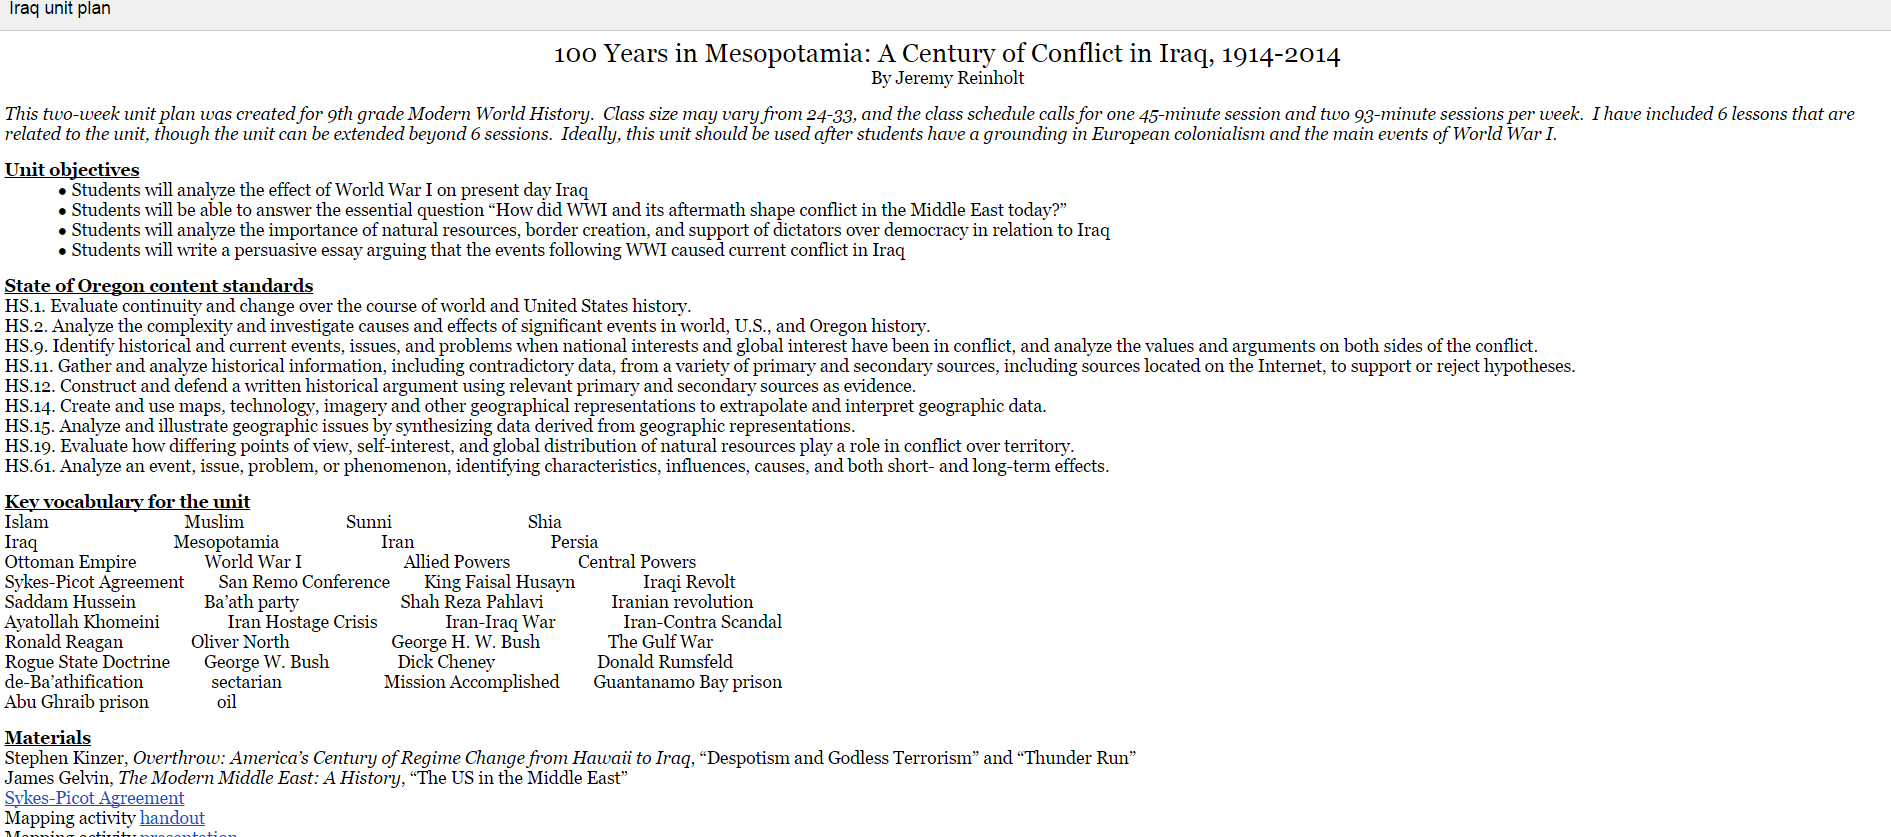 100 Years in Mesopotamia: A Century of Conflict in Iraq, 1914-2014